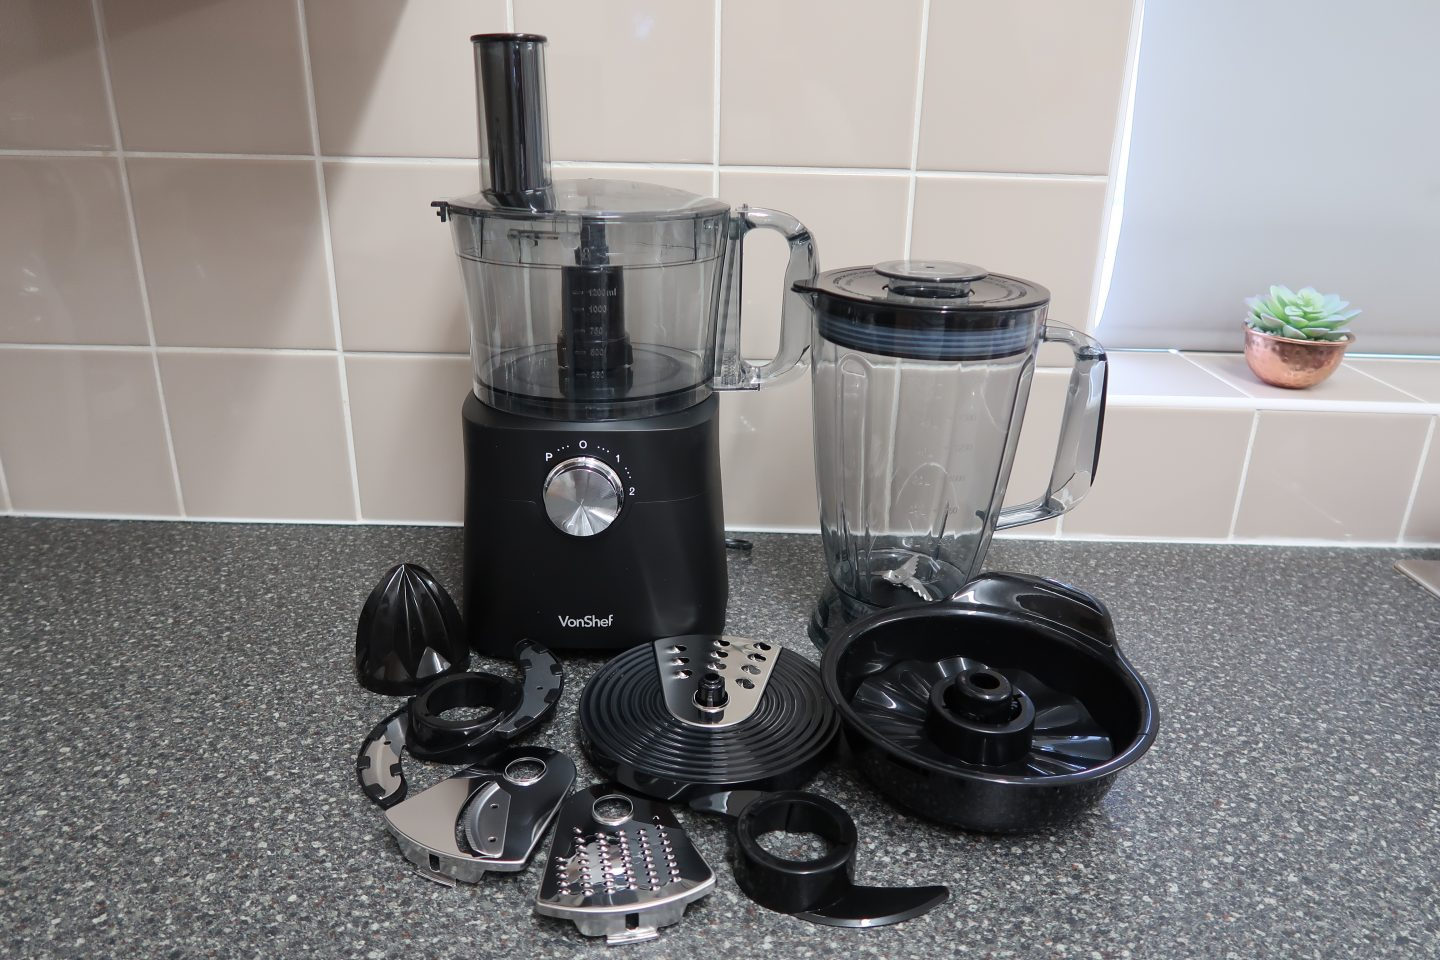 Healthy After School Snacks With The VonShef 750w Food Processor {Review & Giveaway}